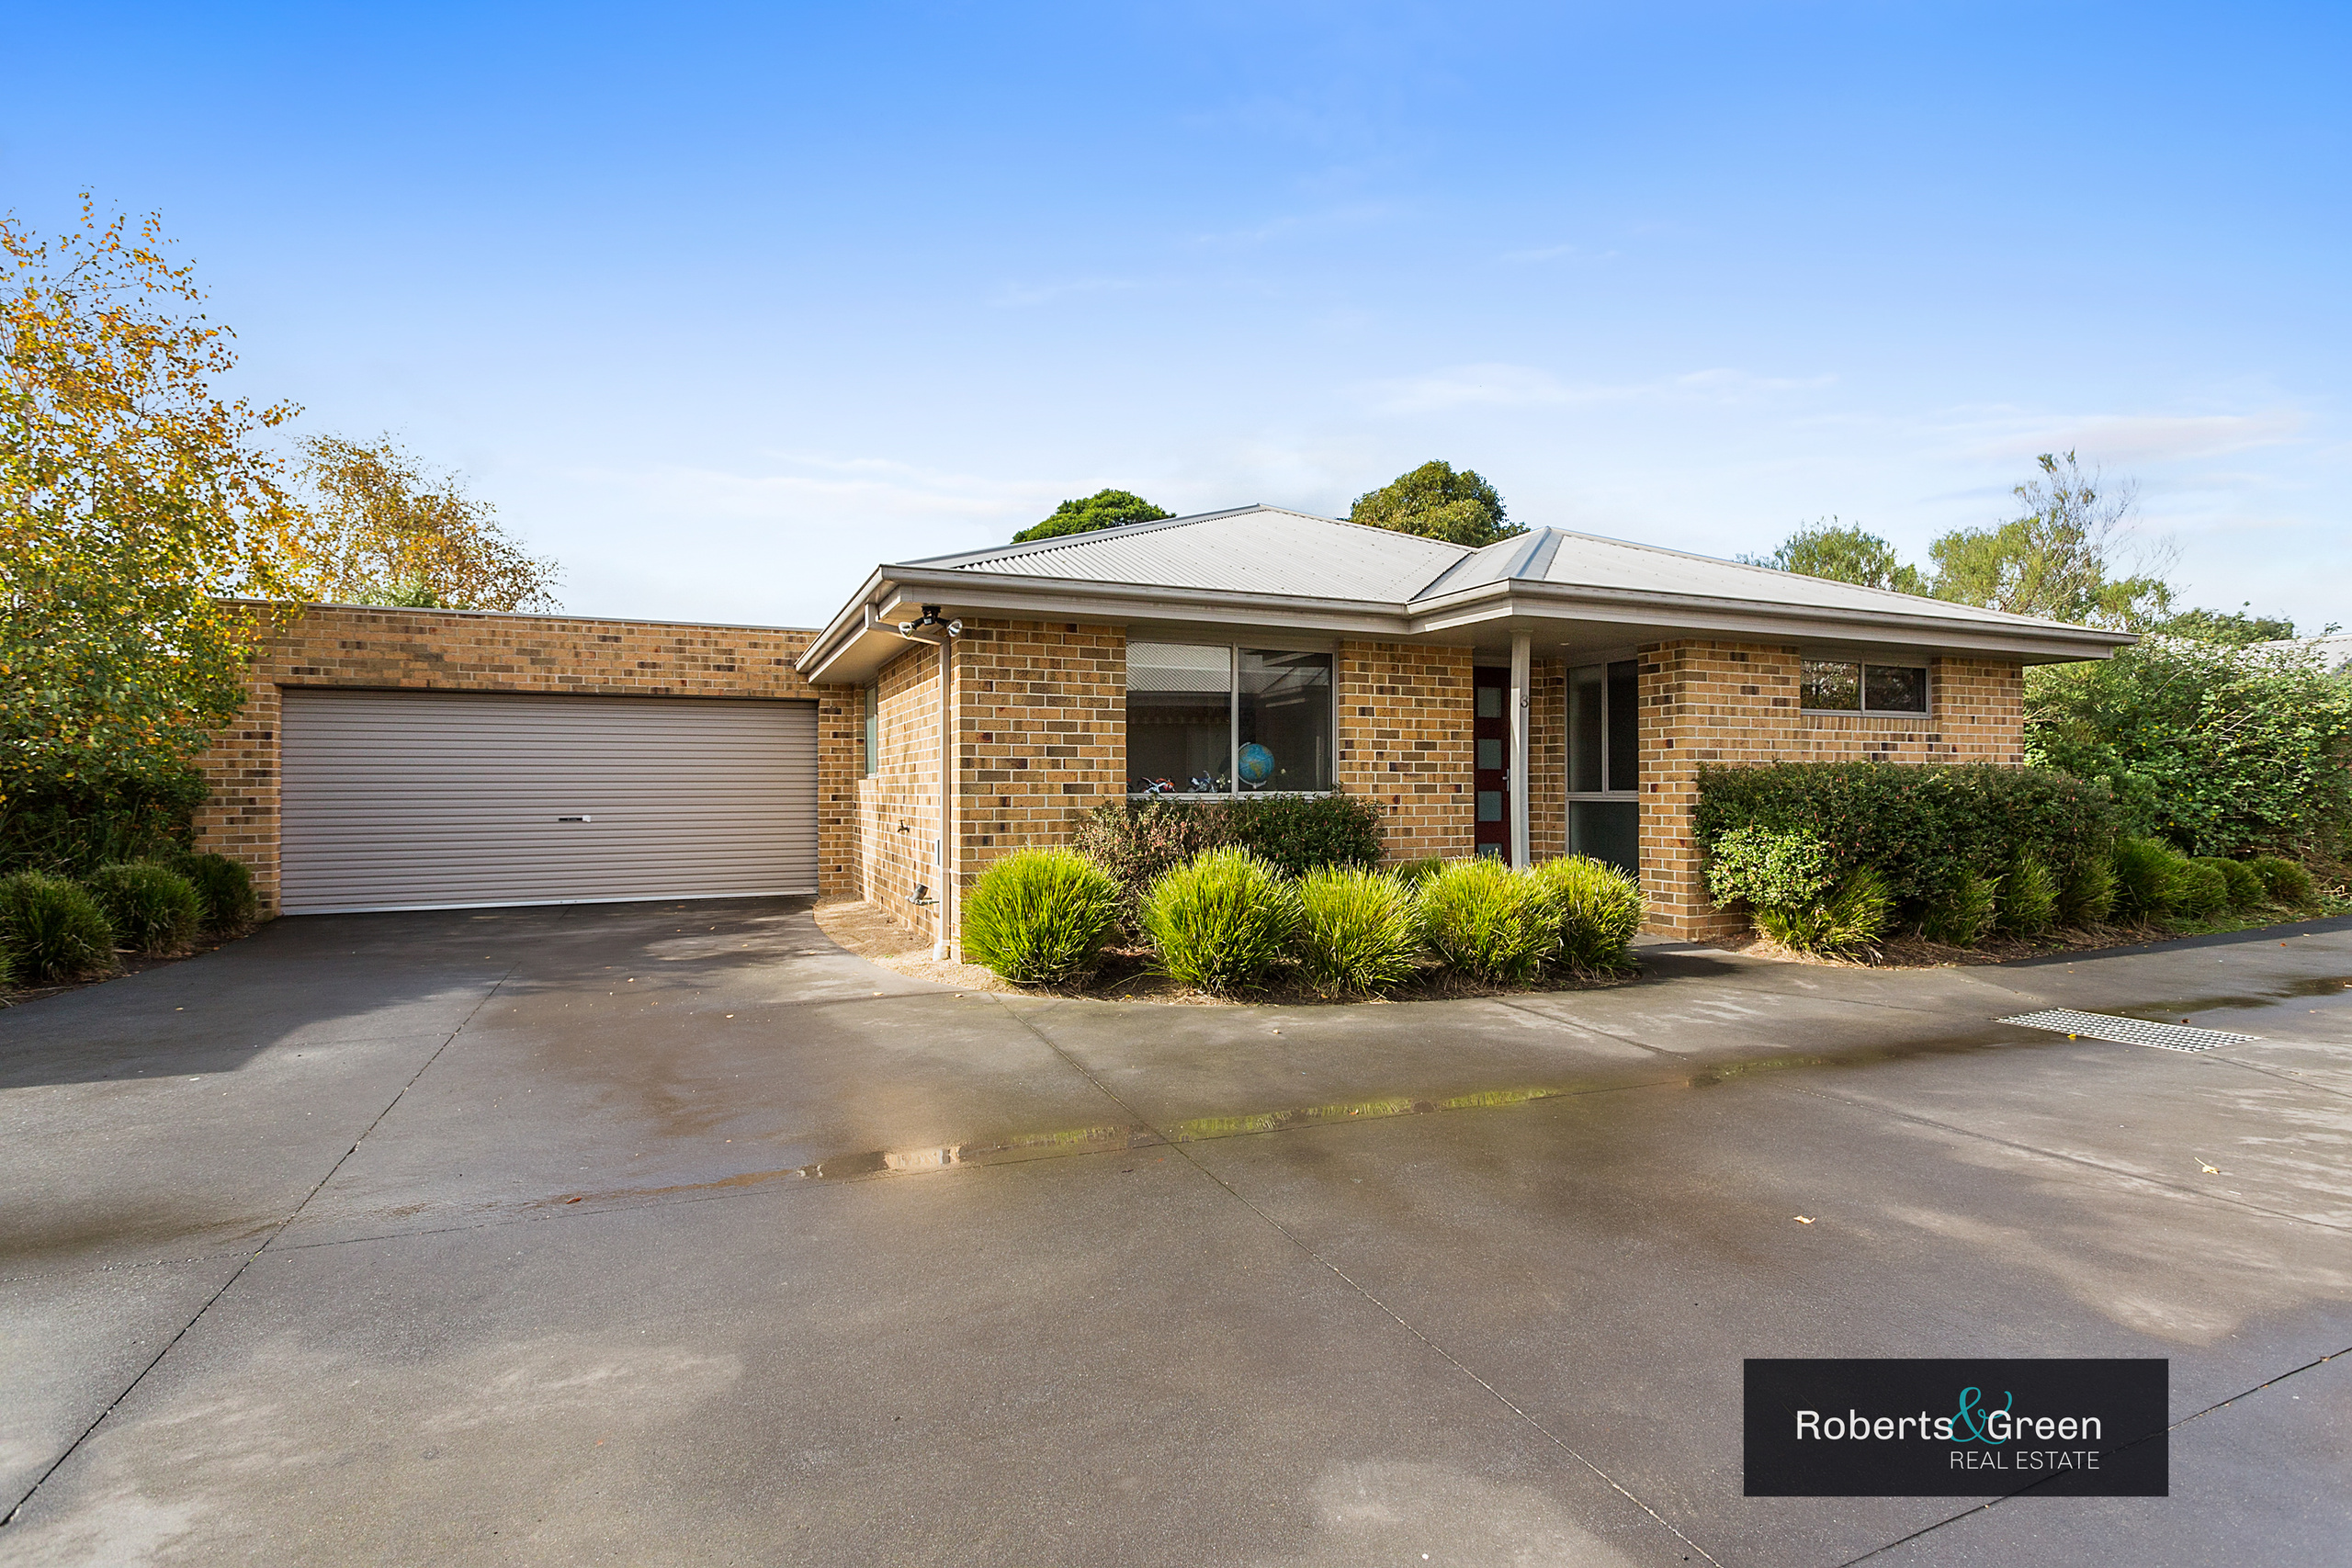 Homes for sale crib point vic - 3 75 Lorimer Street Crib Point Vic 3919 Apartment For Sale 2013580590